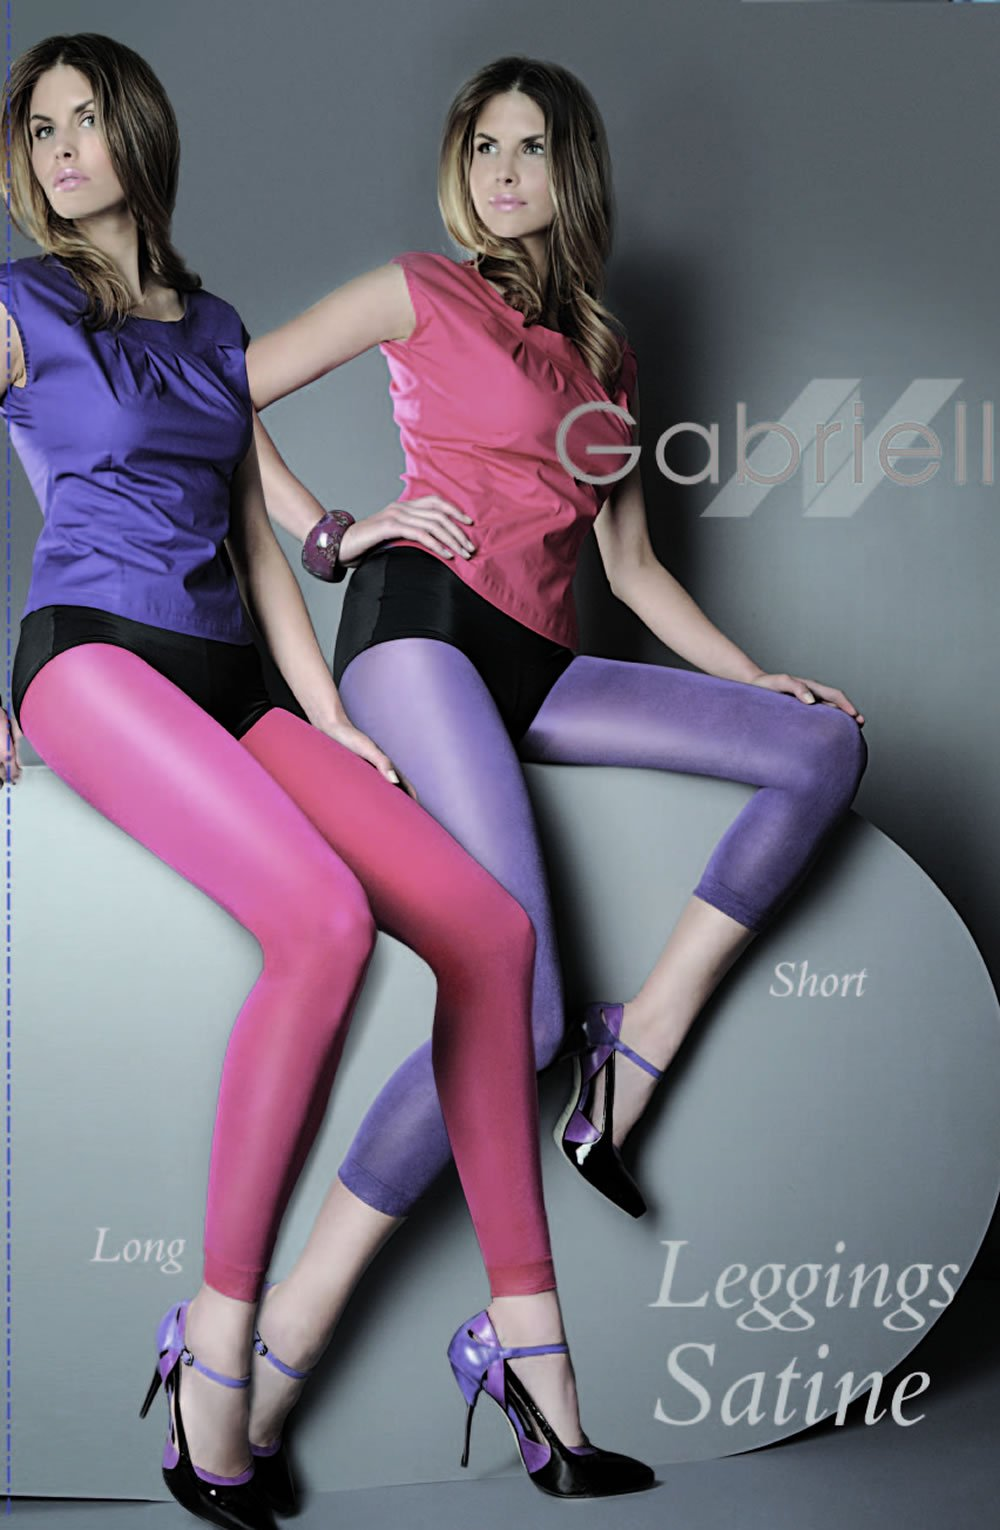 Gabriella Microsatine Long Leggings 131 Chocco - Lingerie